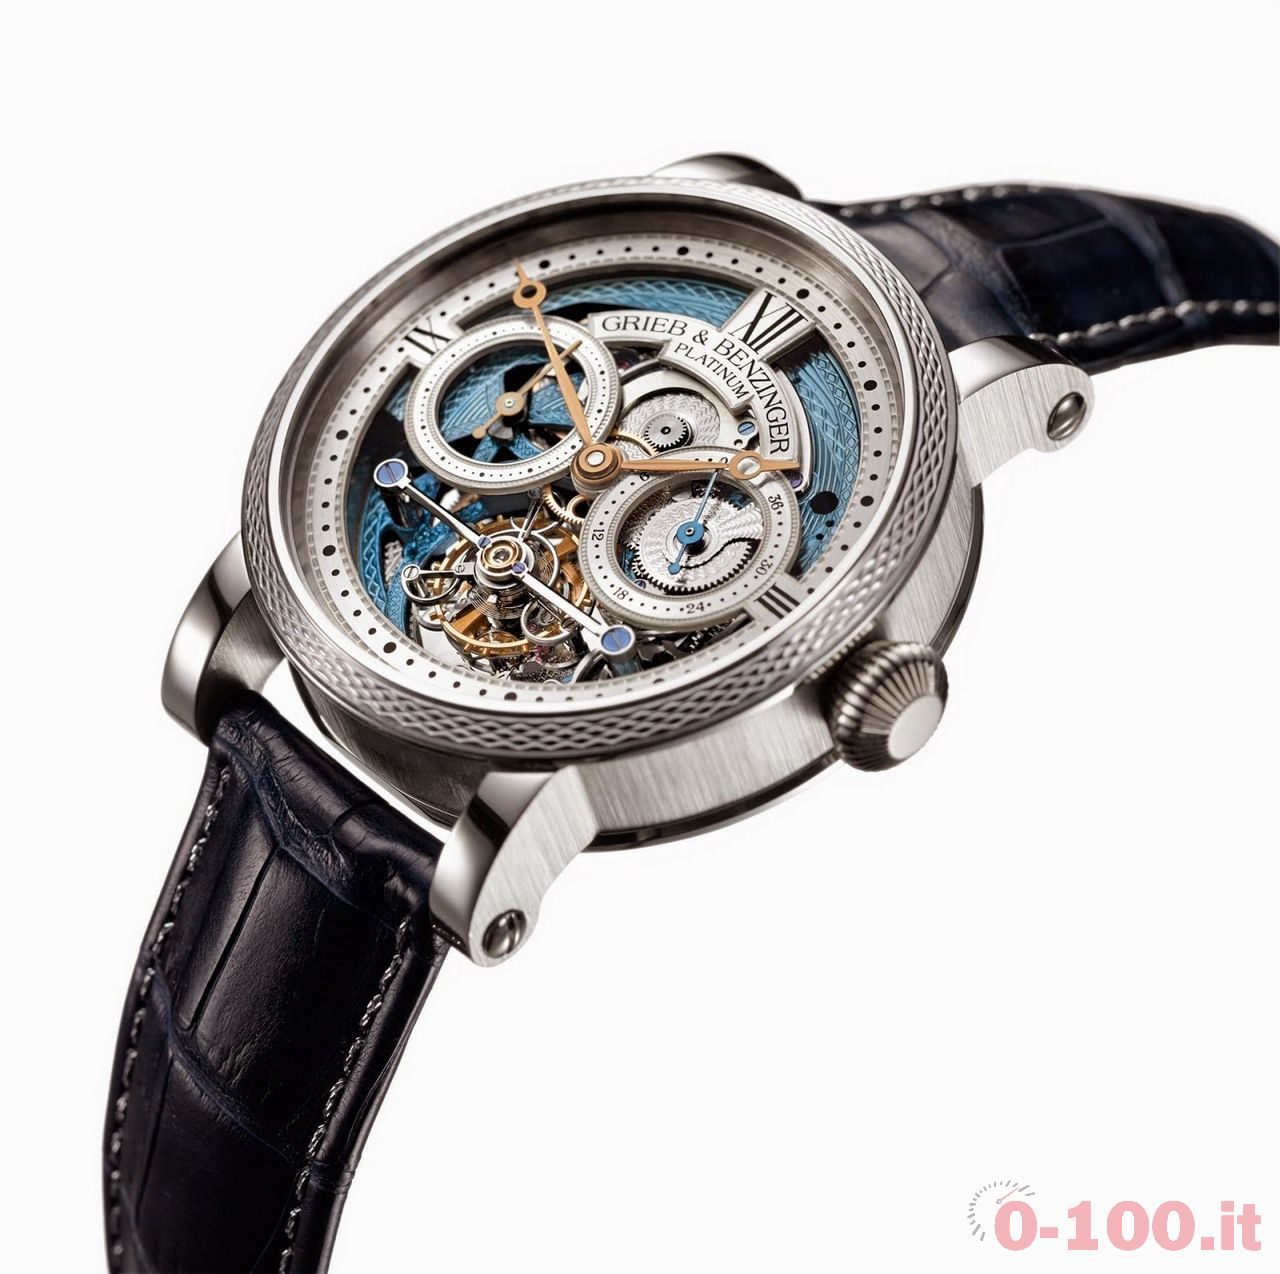 GRIEB & BENZINGER - The BLUE MERIT 1